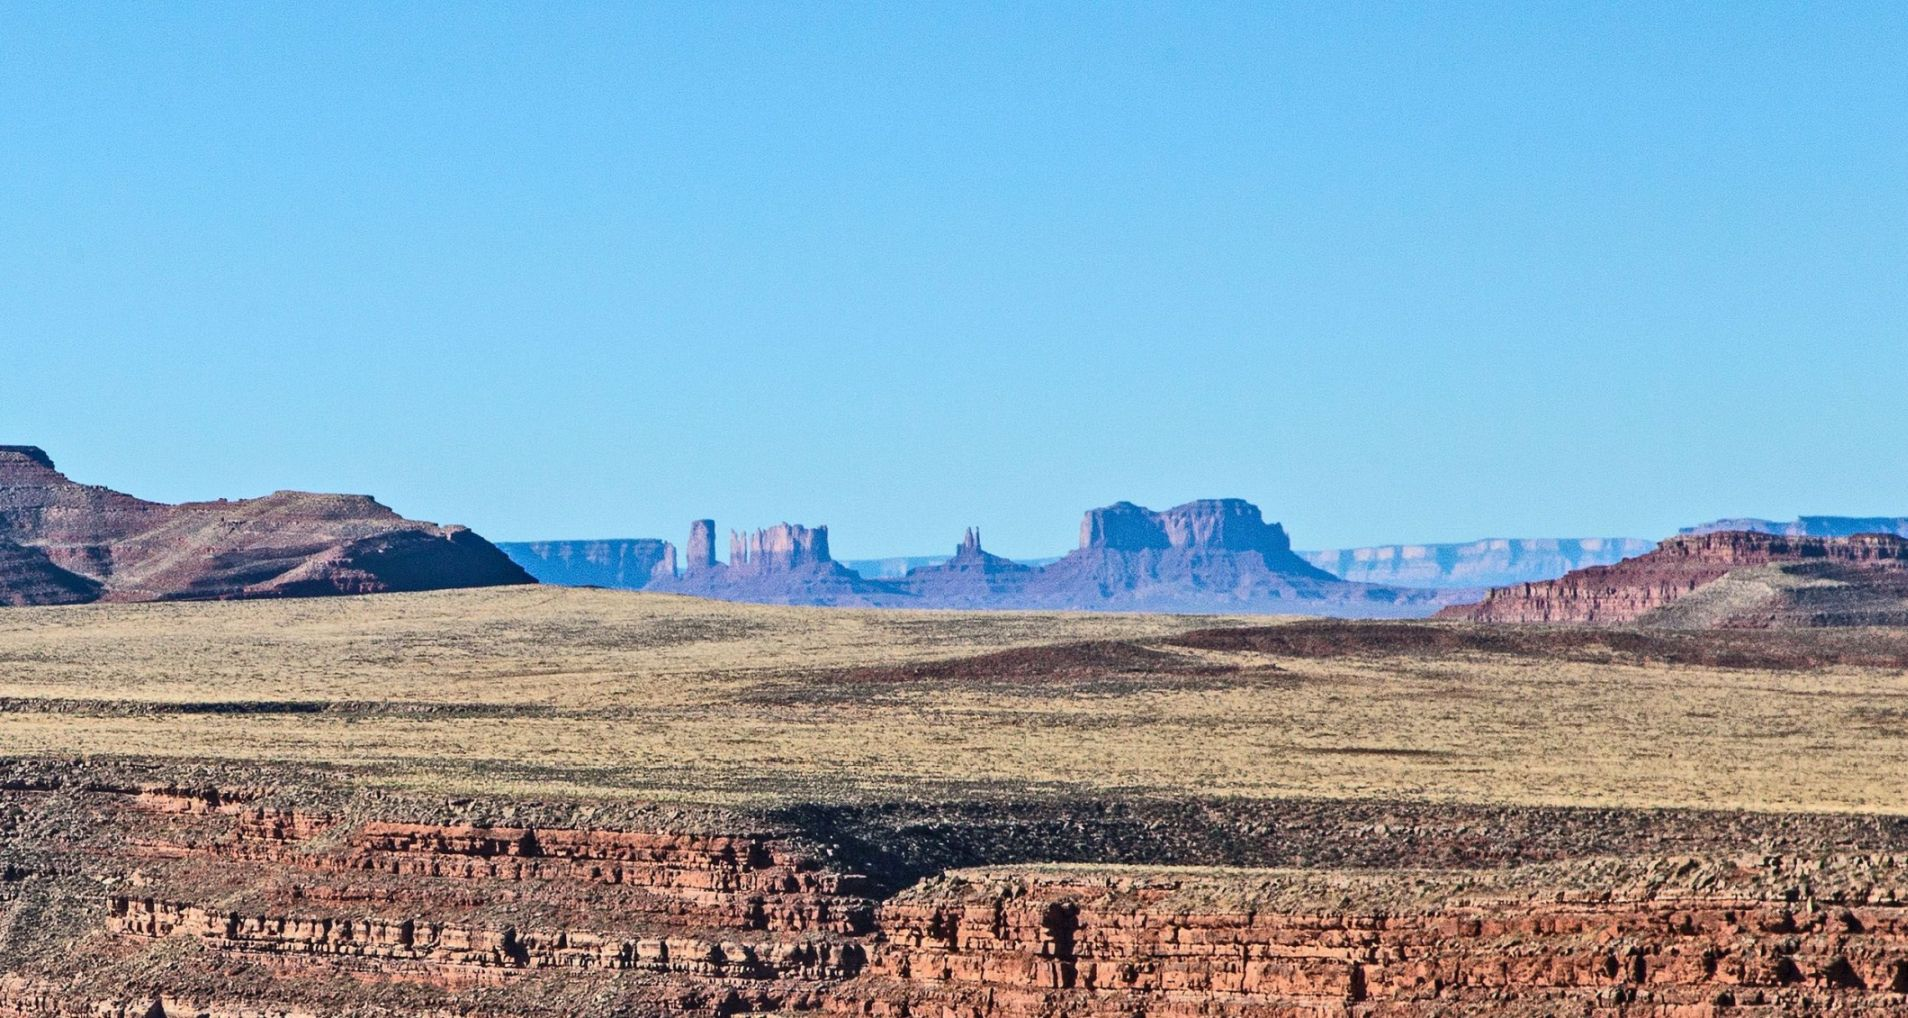 Goosenecks with Monument Valley in the Distance